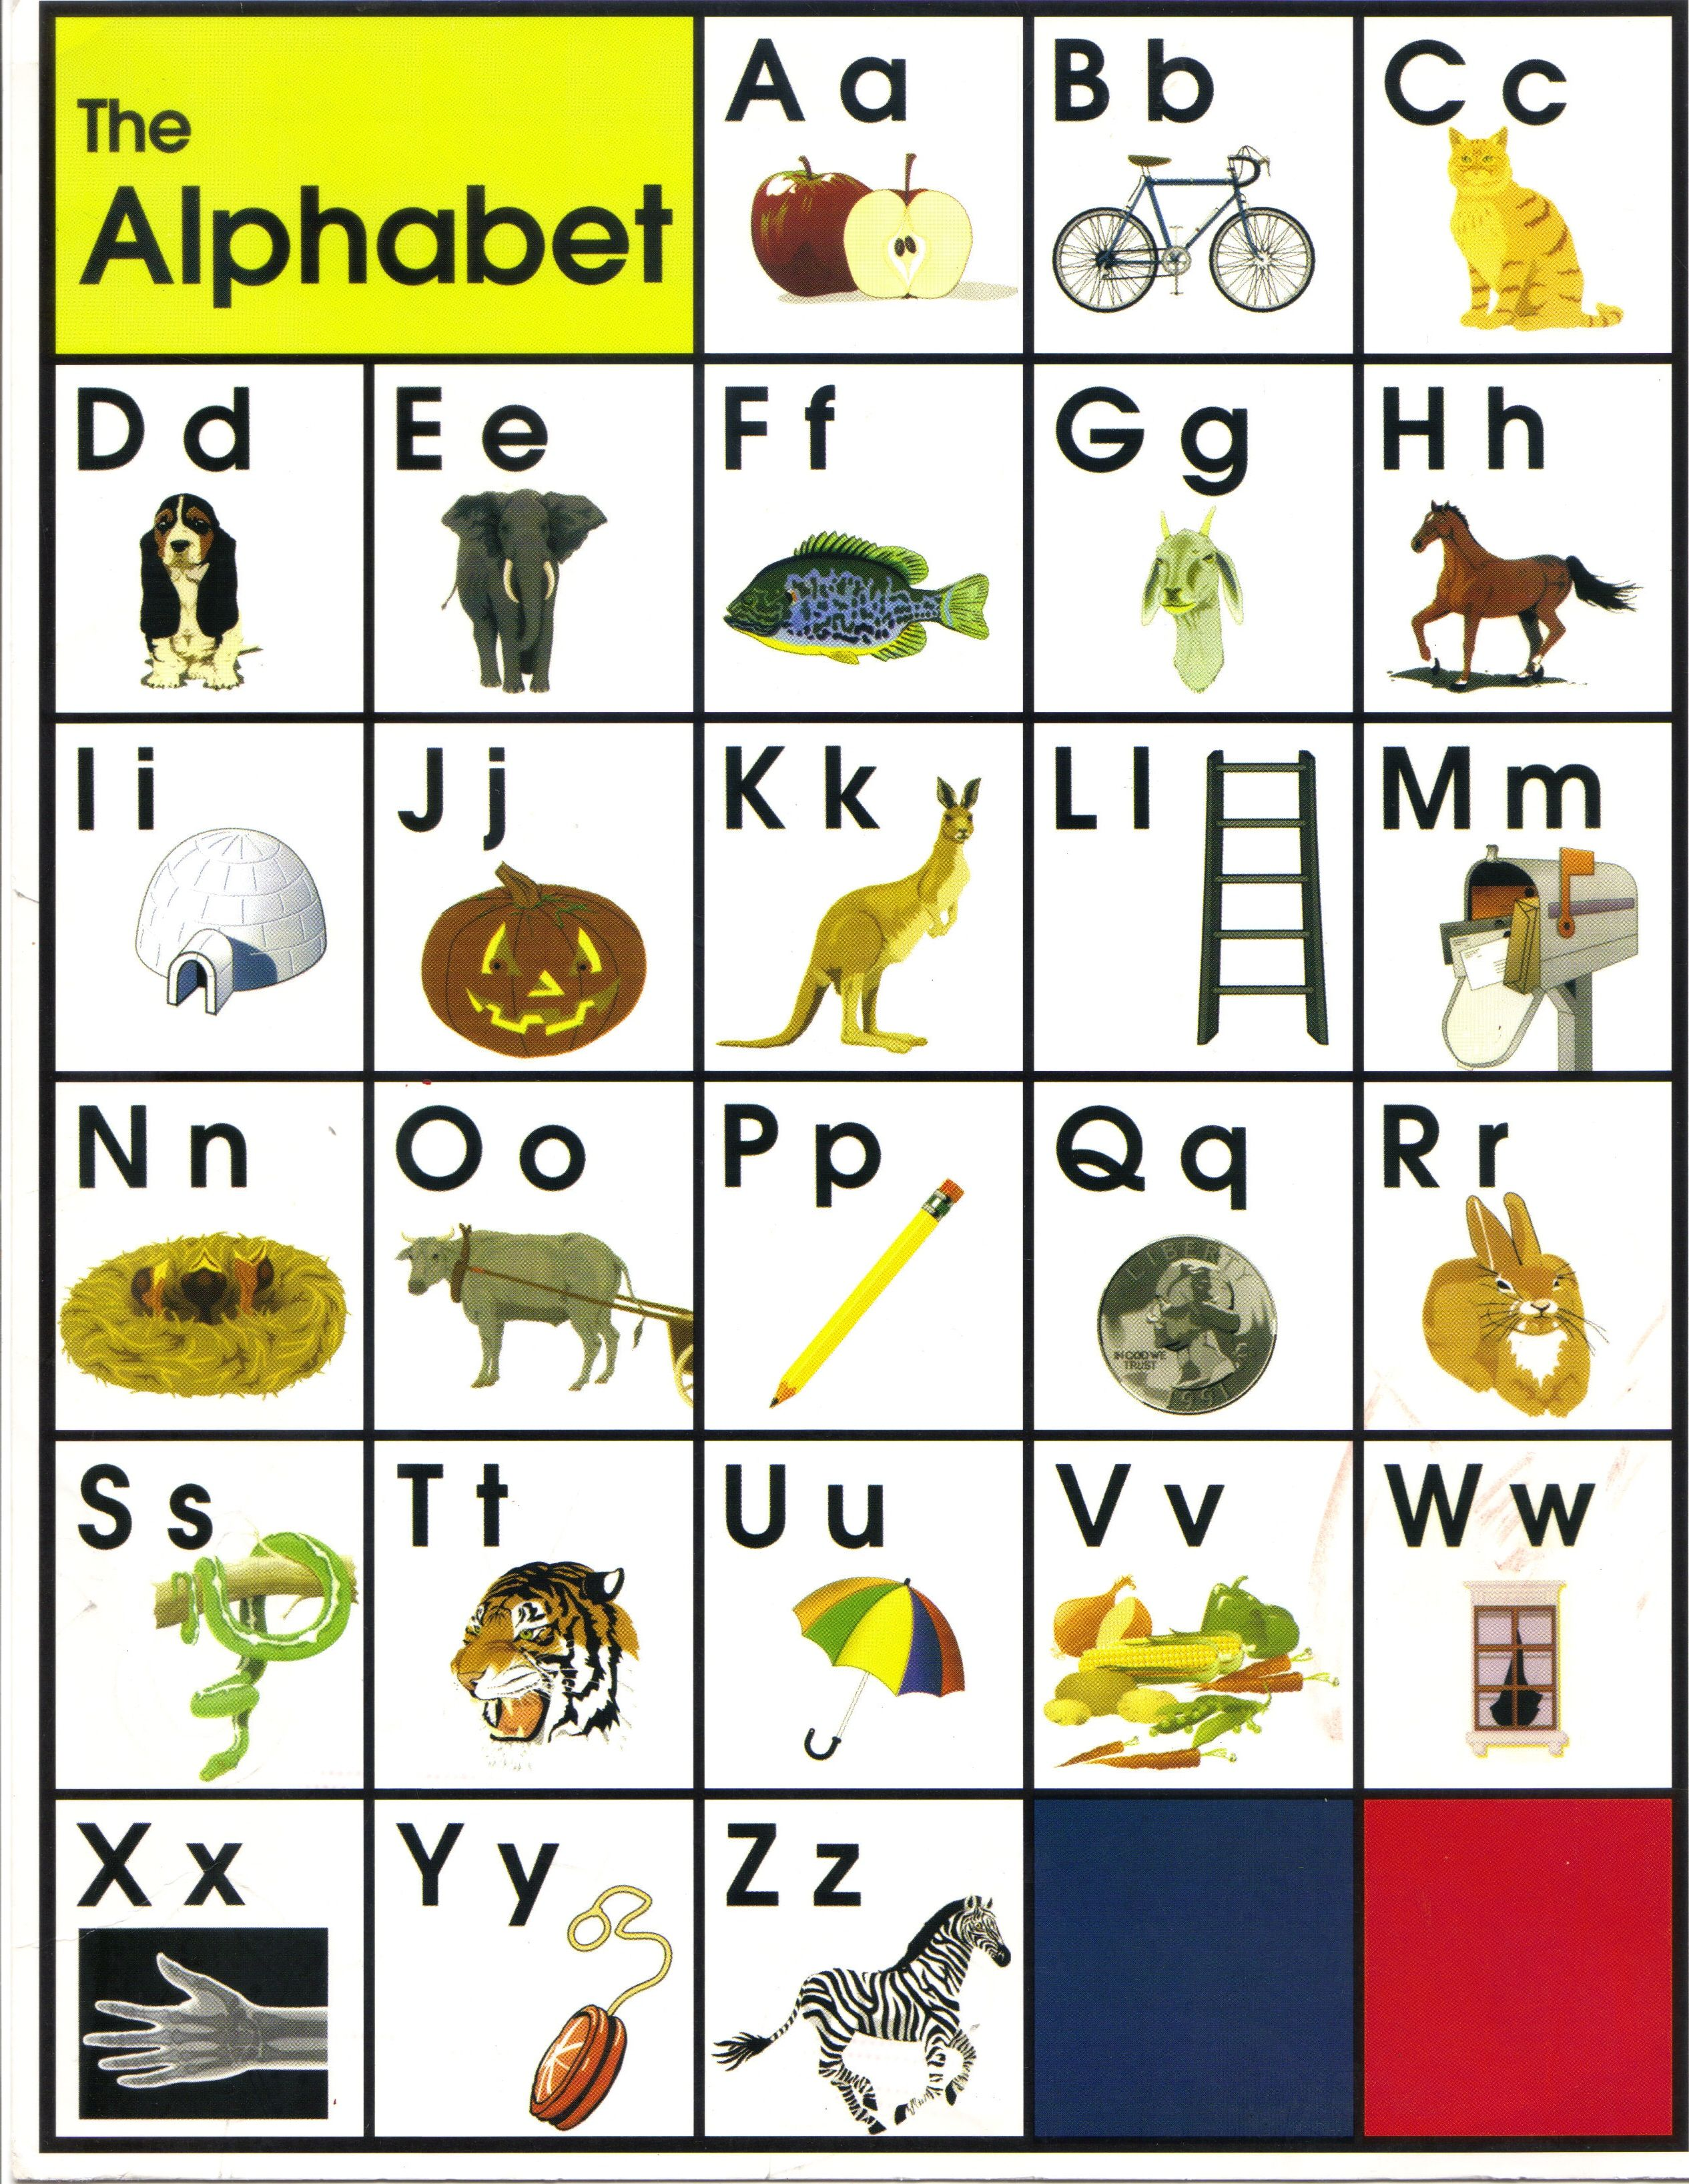 Worksheets Abcd Chart World alphabet for preschool kindergarten chart places to chart